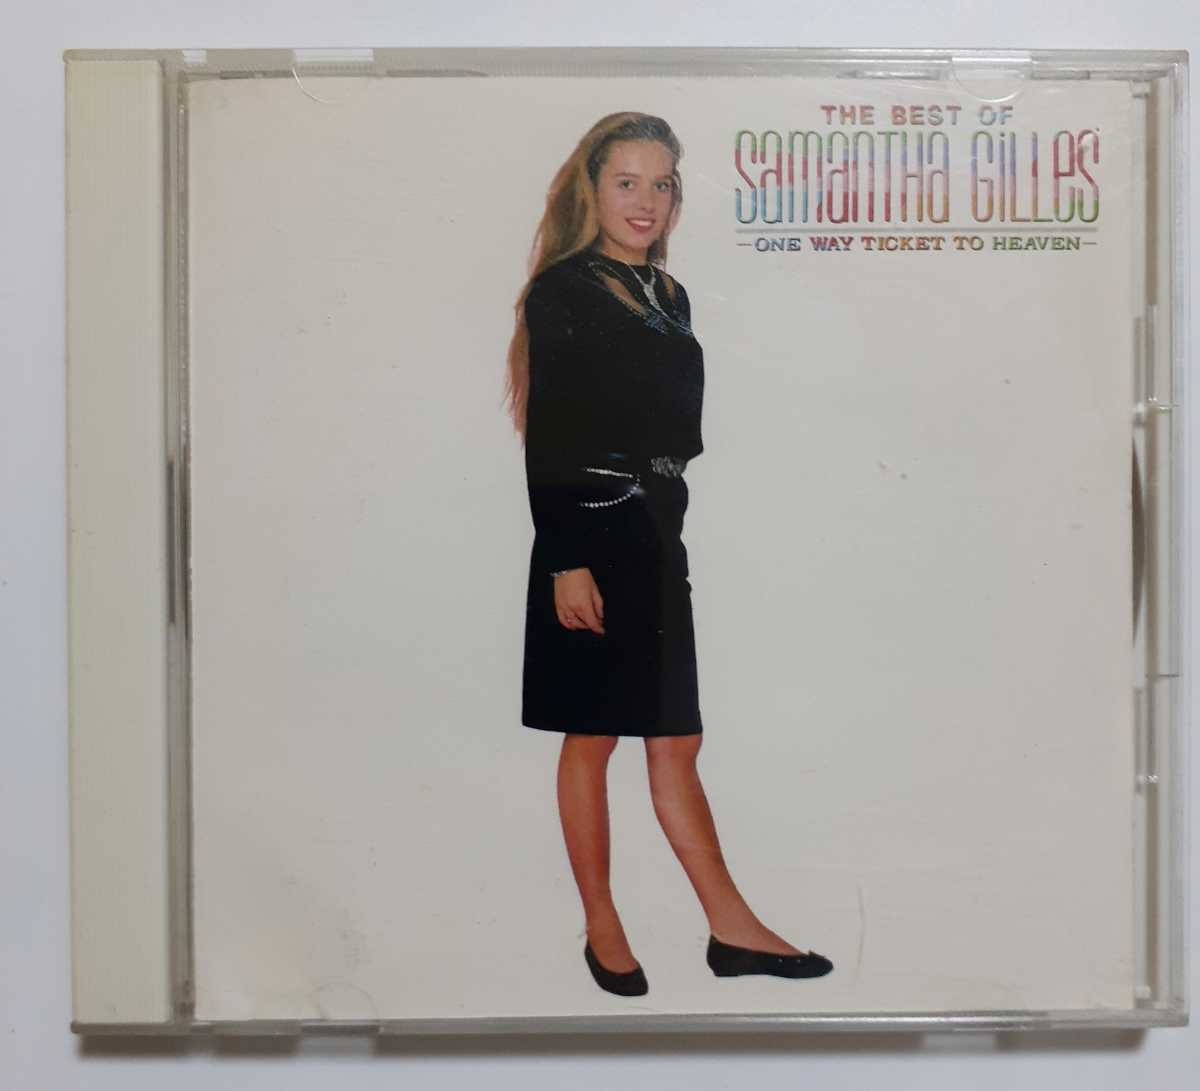 THE BEST OF Samantha Gilles ~ONE WAY TICKET TO HEAVEN~